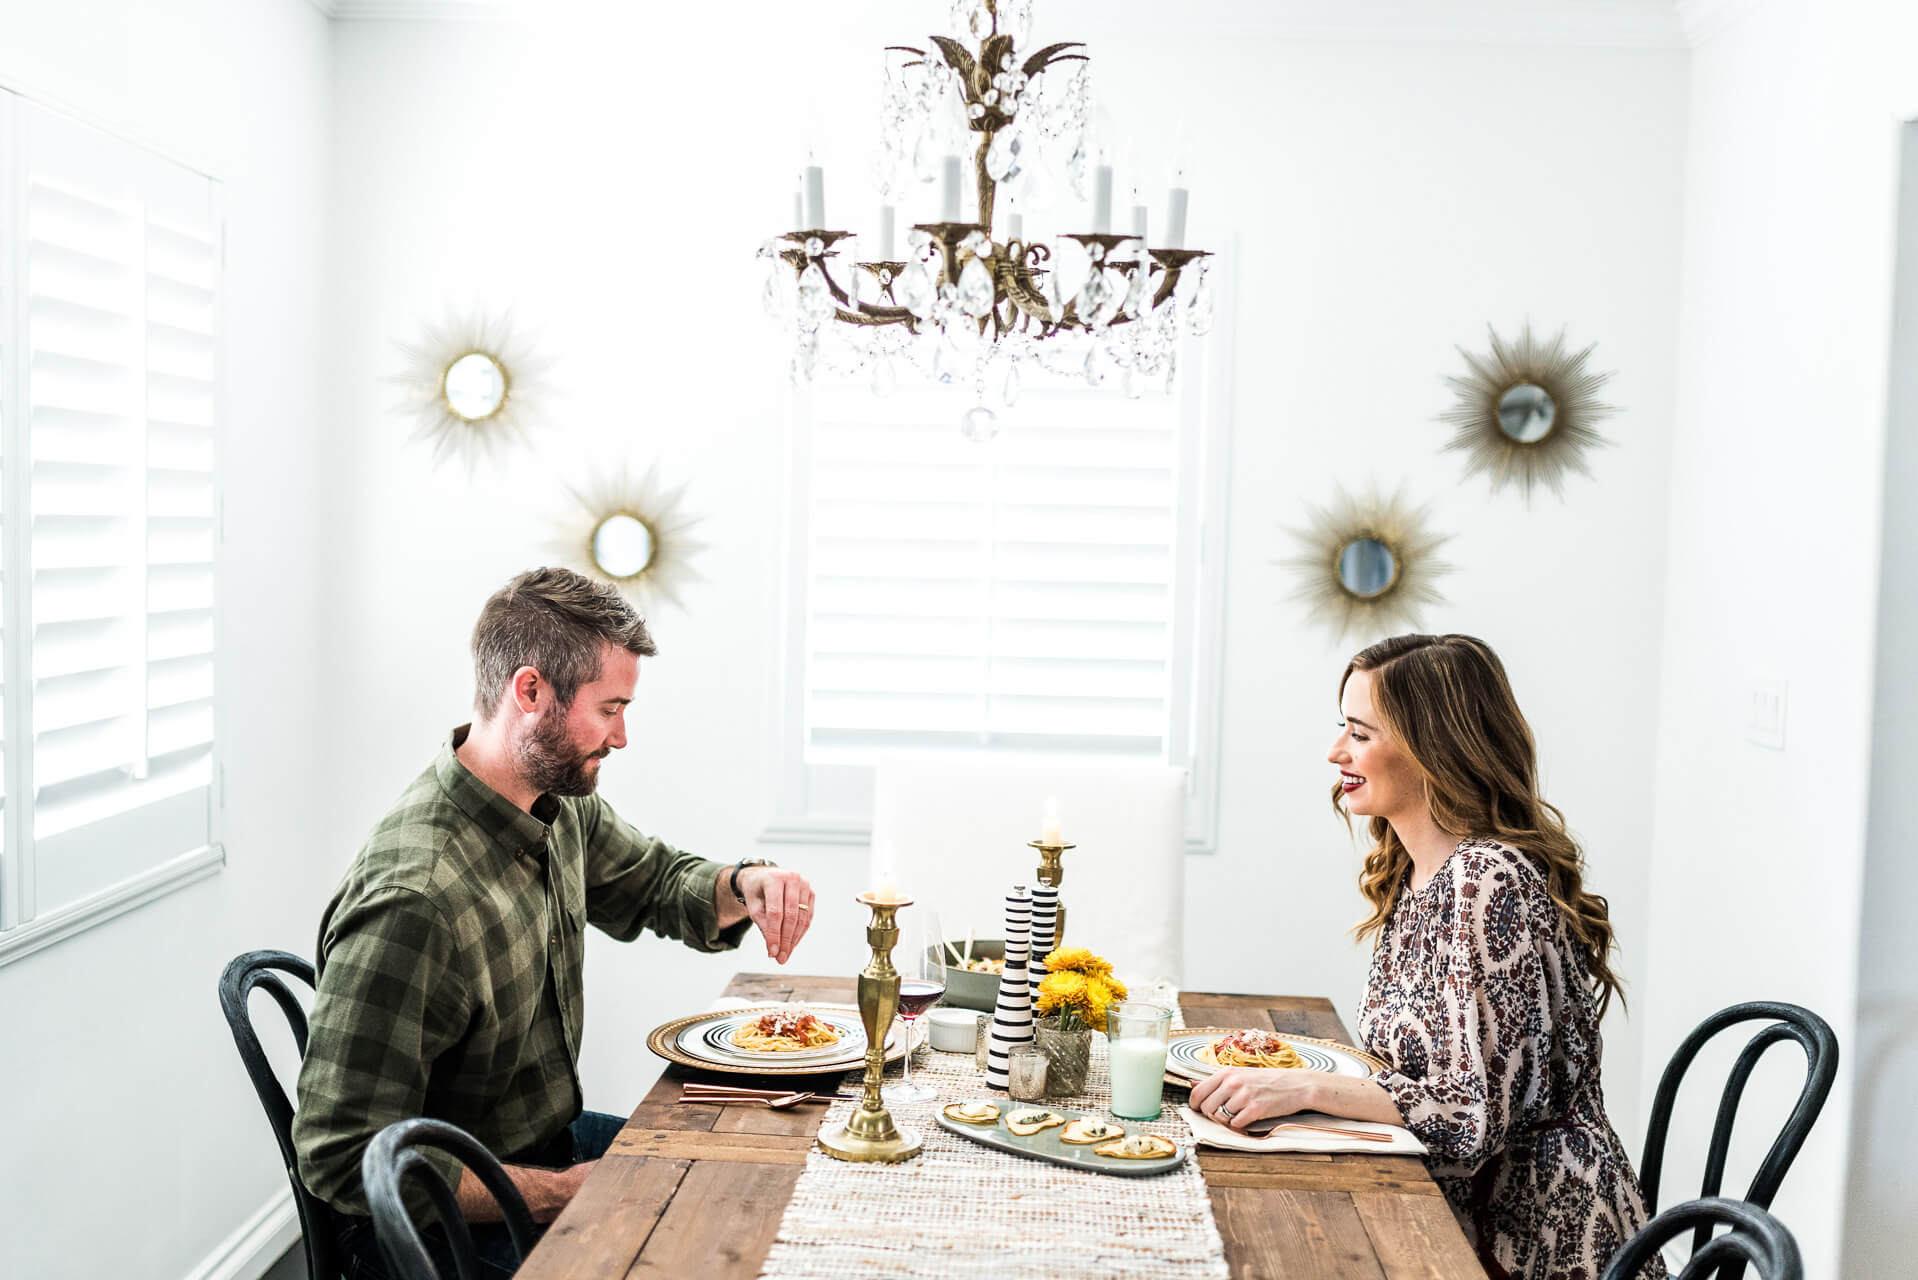 dinner date at home